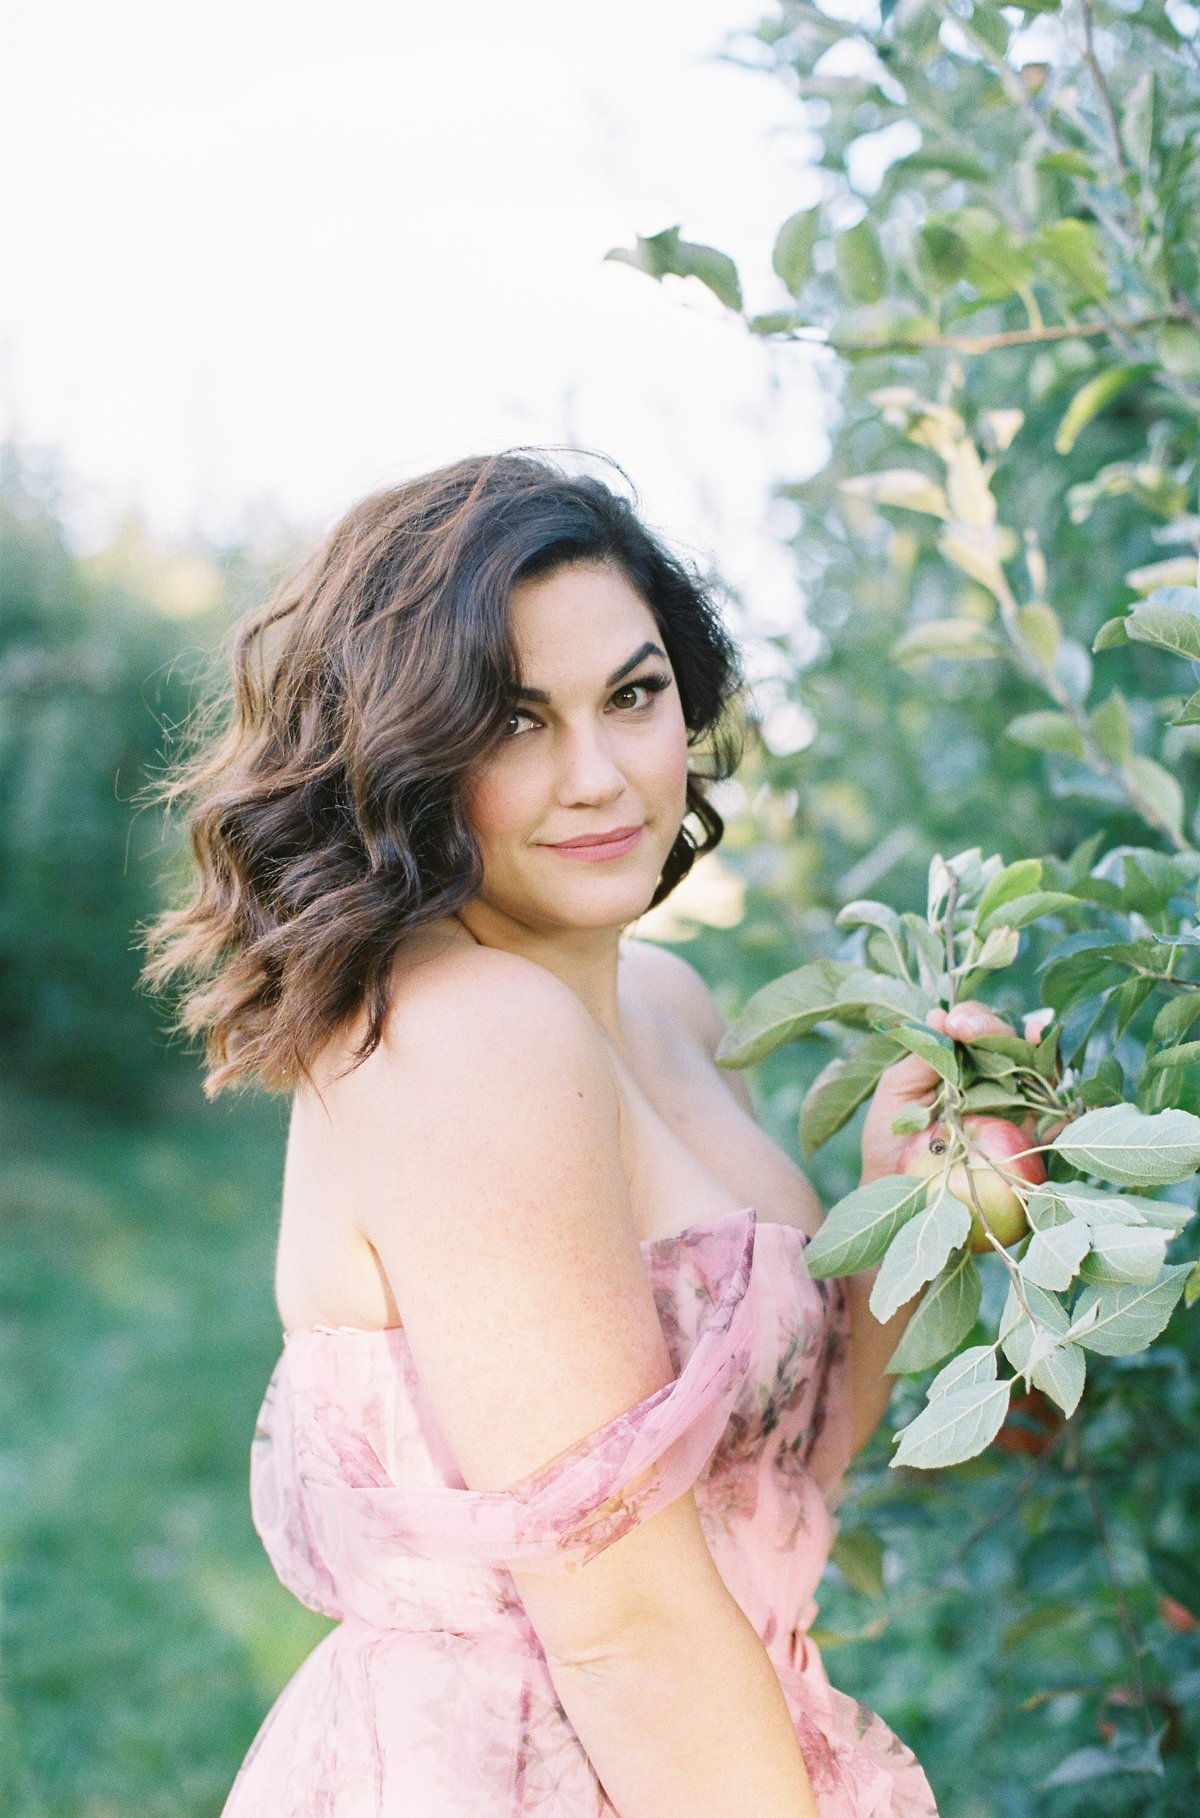 Engagement Photography session portrait of a dark haired woman in an apple field gauzy dress Marchesa Notte Soergel's Orchard | Pittsburgh Wedding Photographer | Anna Laero